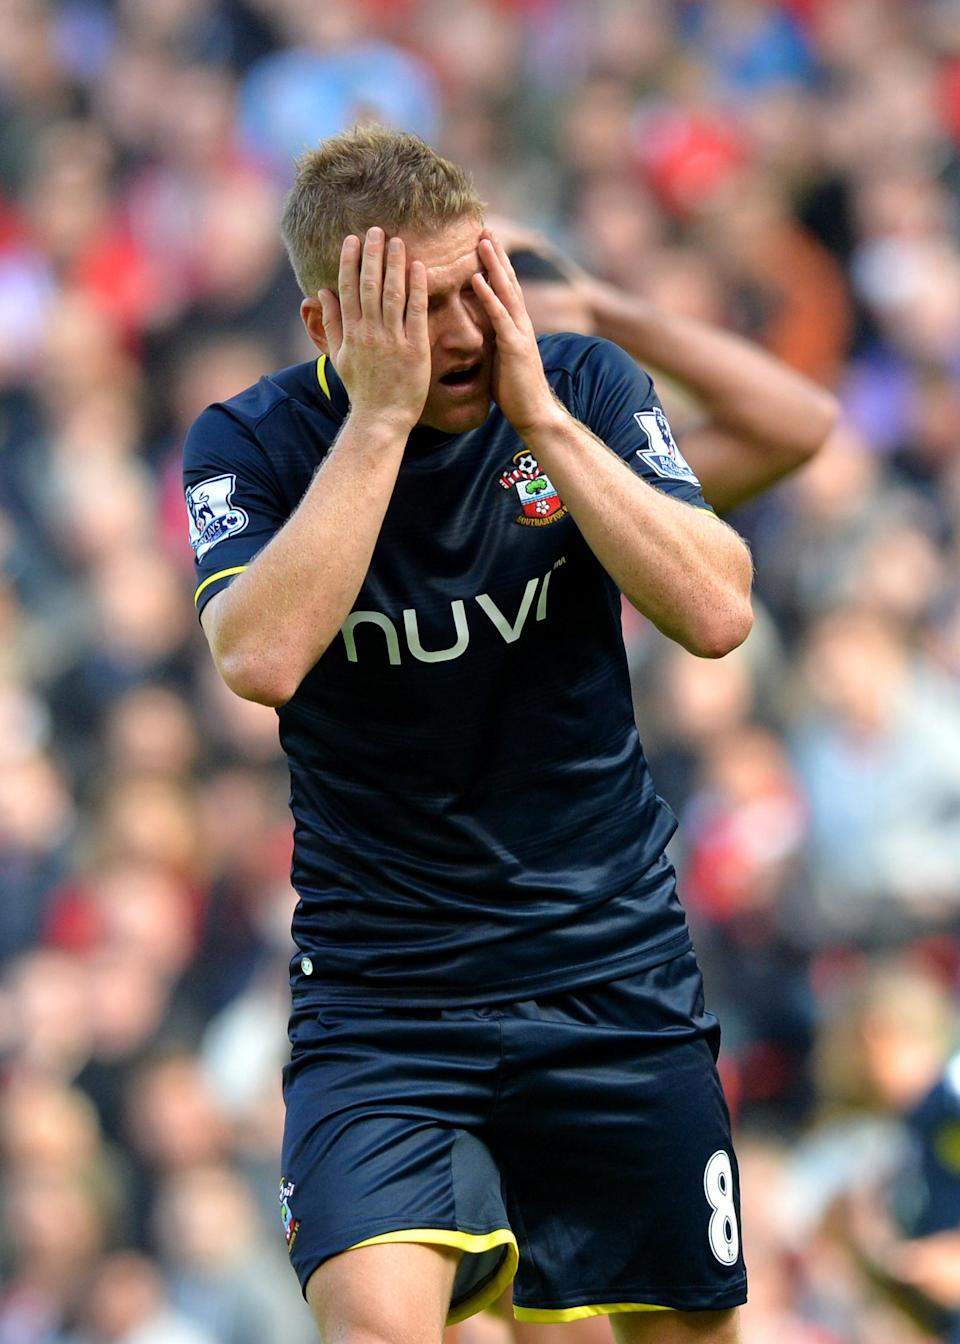 Southampton's Steven Davis reacts to missing a chance to score a goal during their English Premier League match against Liverpool, at Anfield stadium in Liverpool, northwest England, on August 17, 2014 (AFP Photo/Paul Ellis)